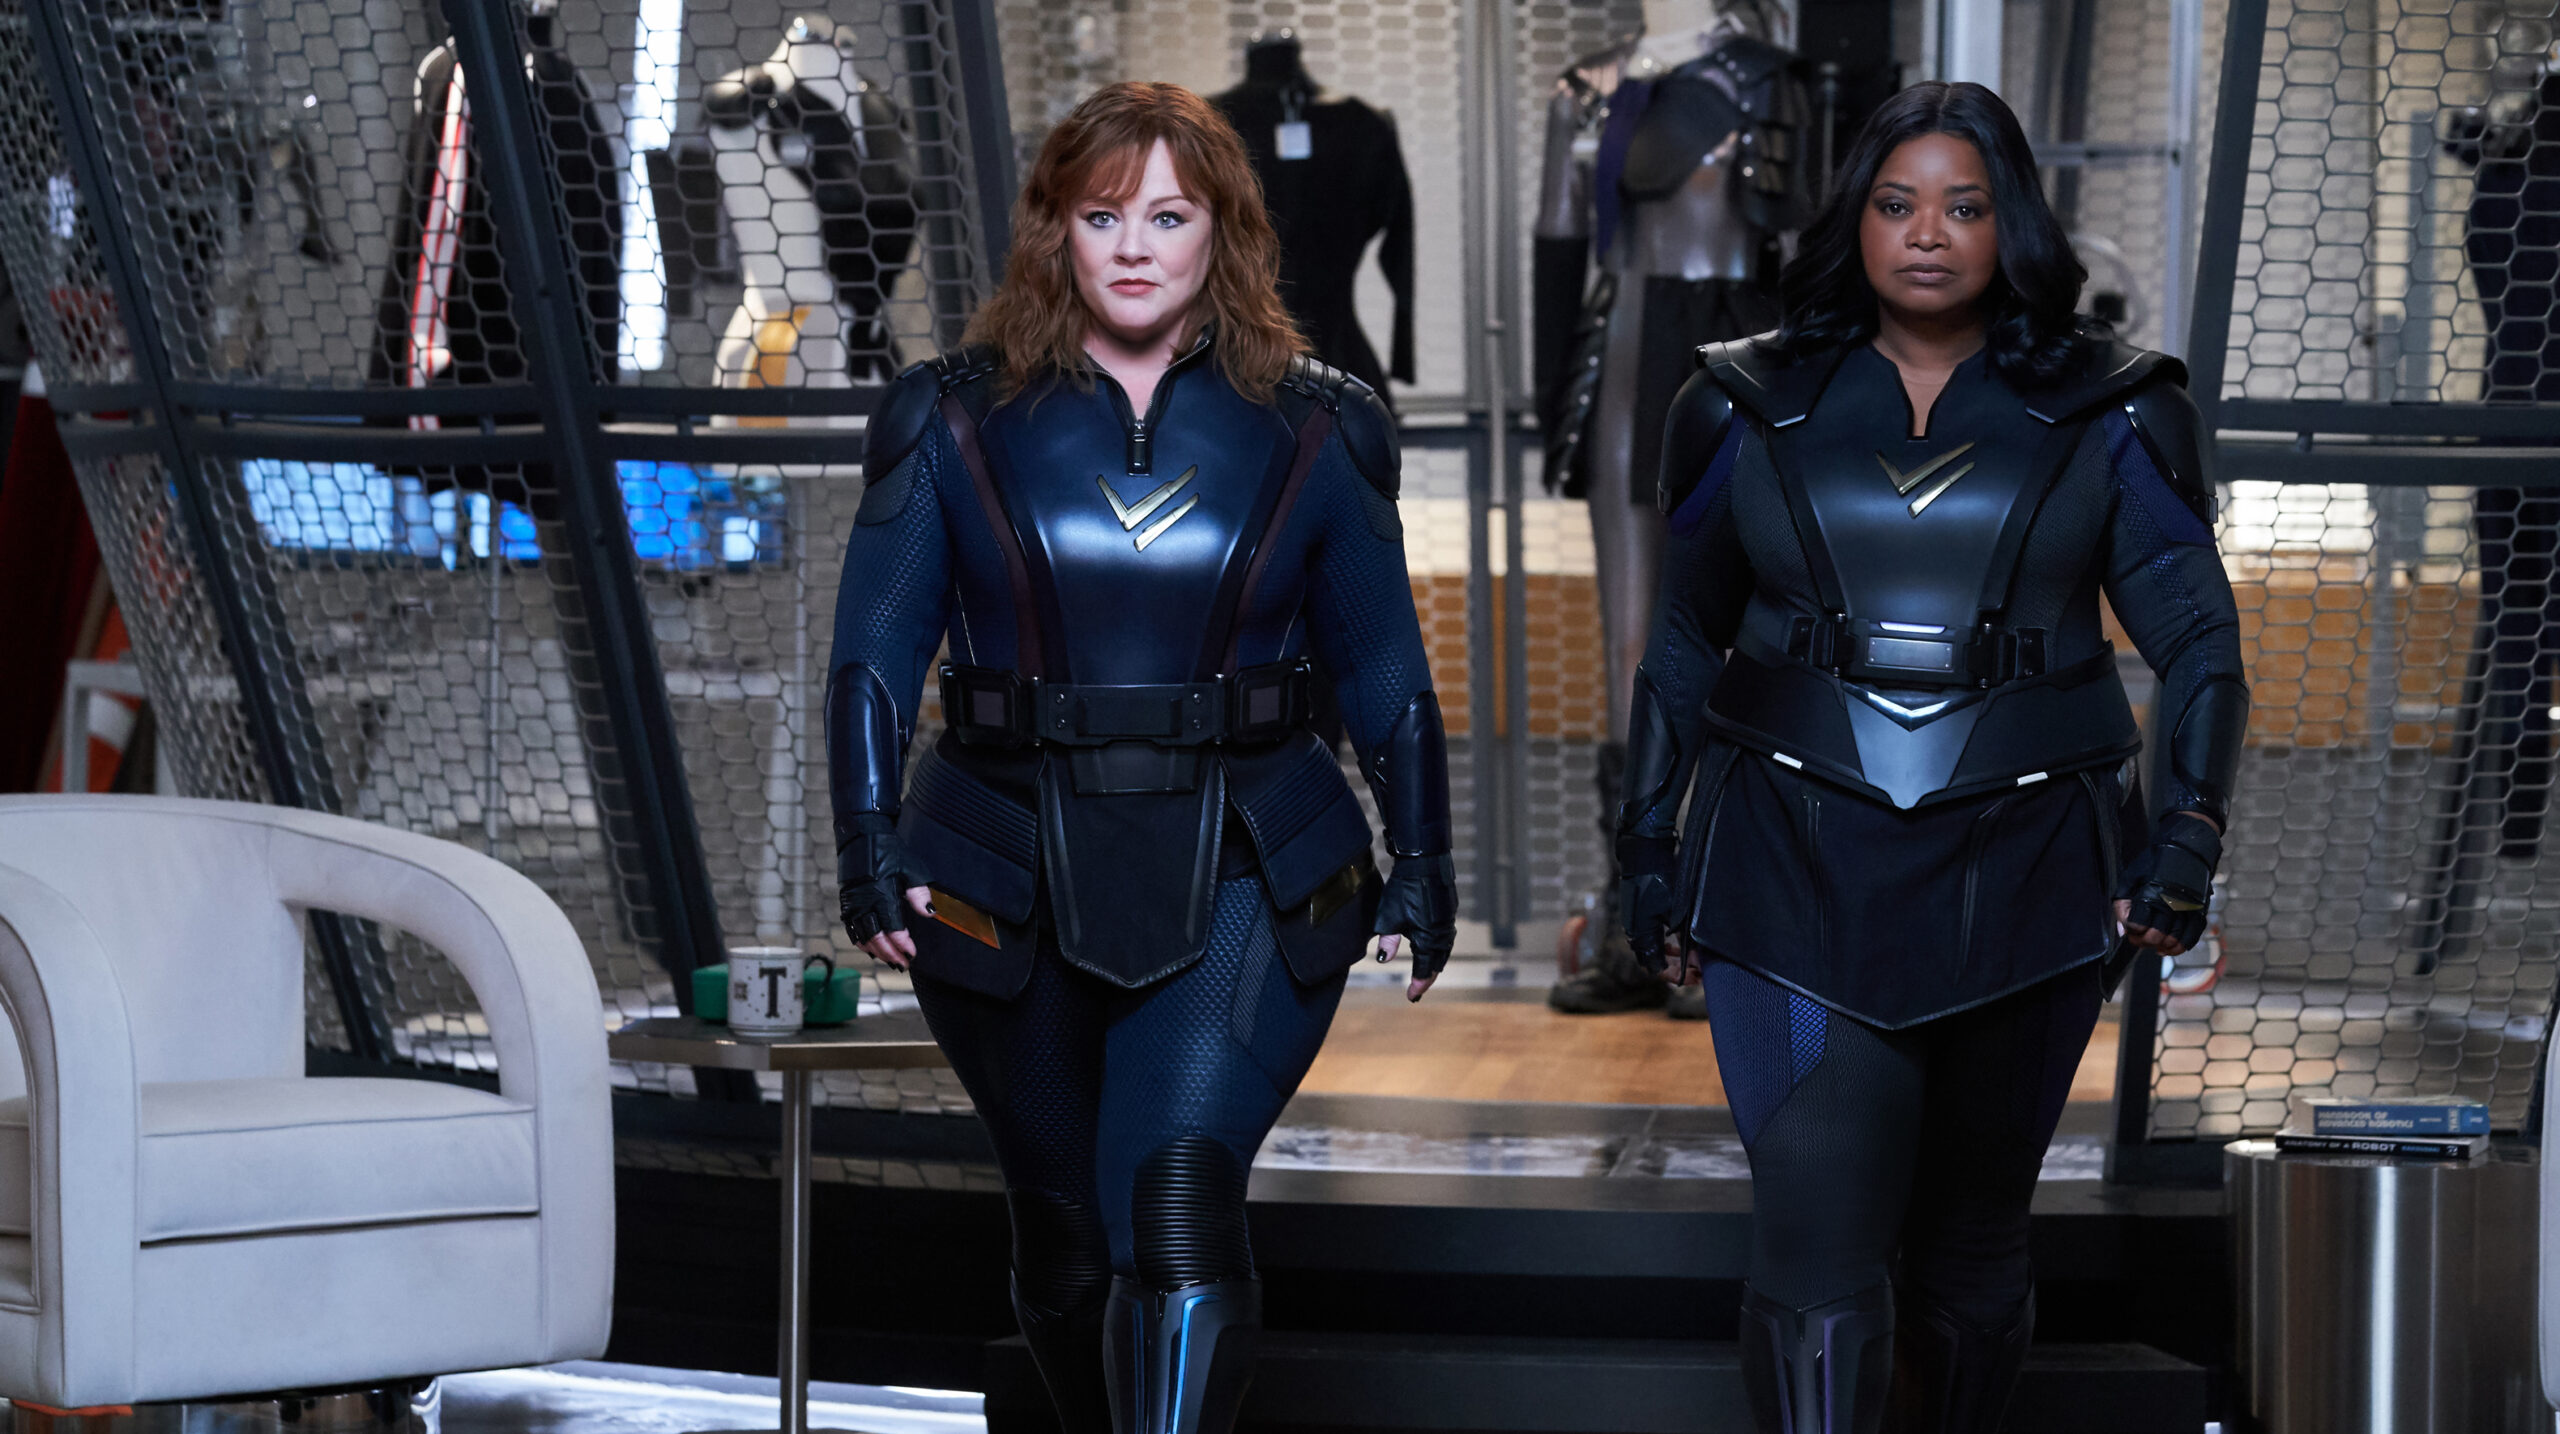 Melissa McCarthy and Octavia Spencer walking beside each other in skin tight black Thunder Force outfit